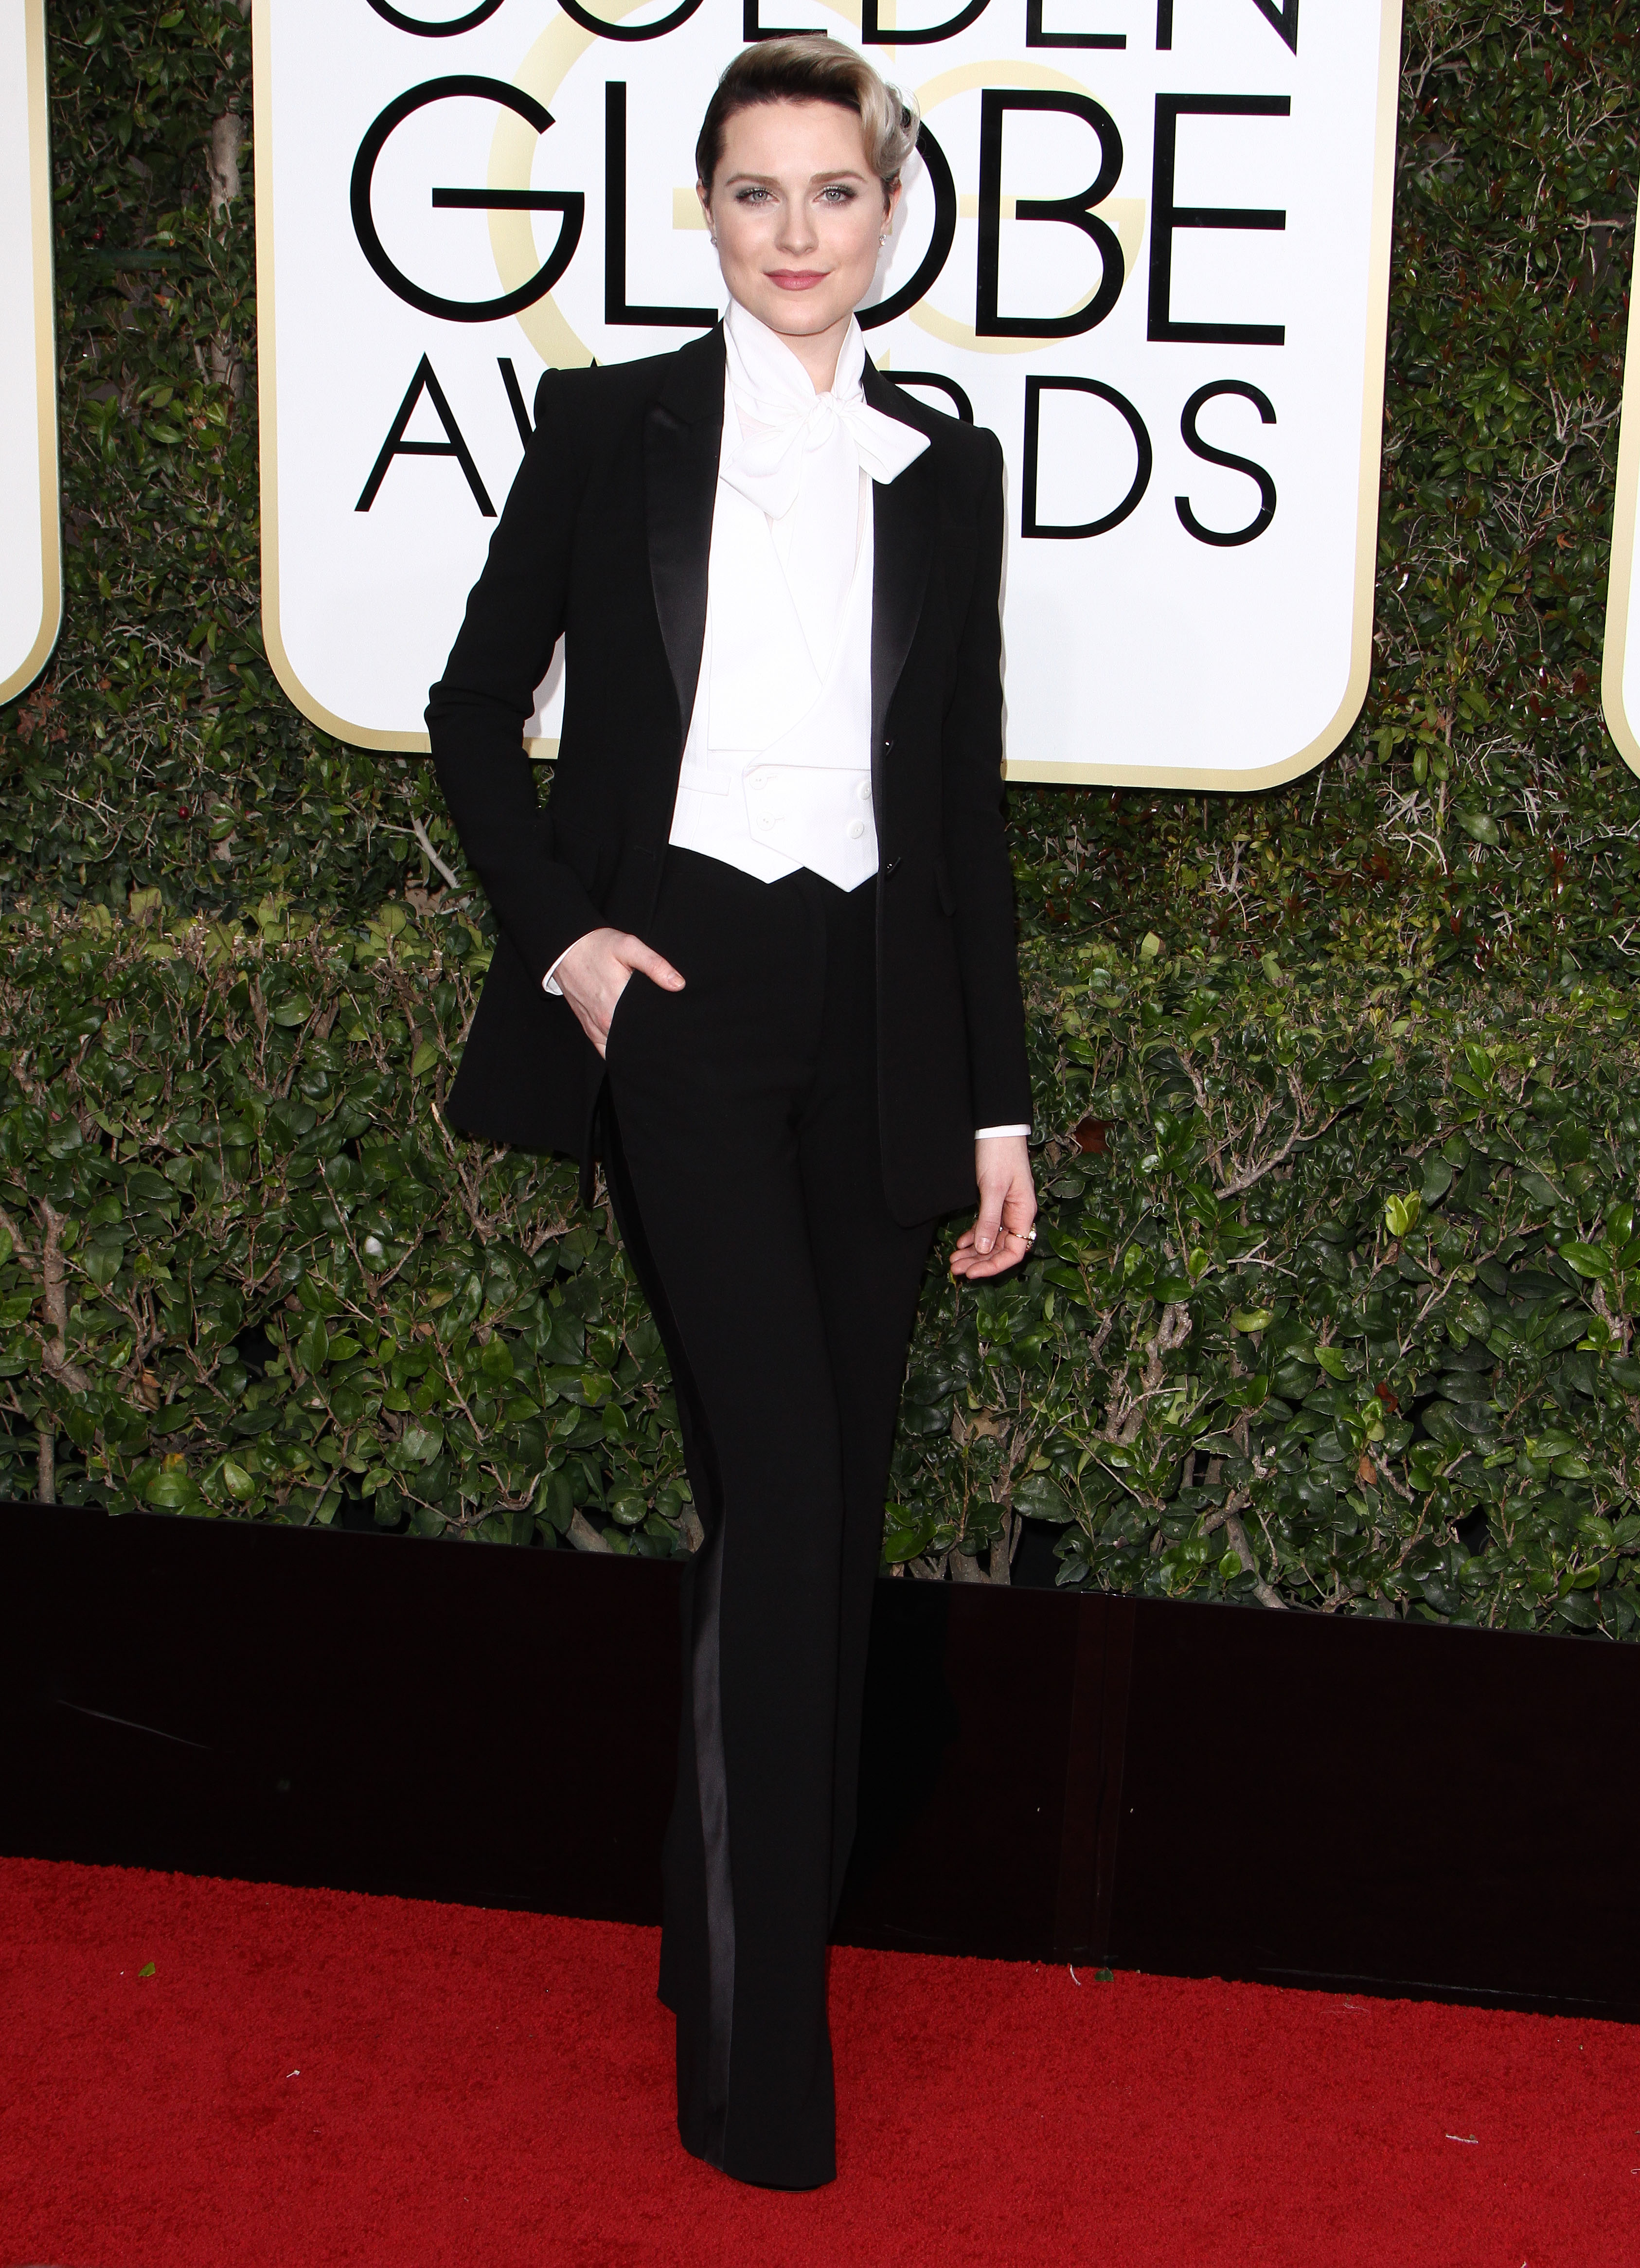 Golden Globes 2017: Evan Rachel Wood Is VERY COOL in Altuzarra (and Other Suits)